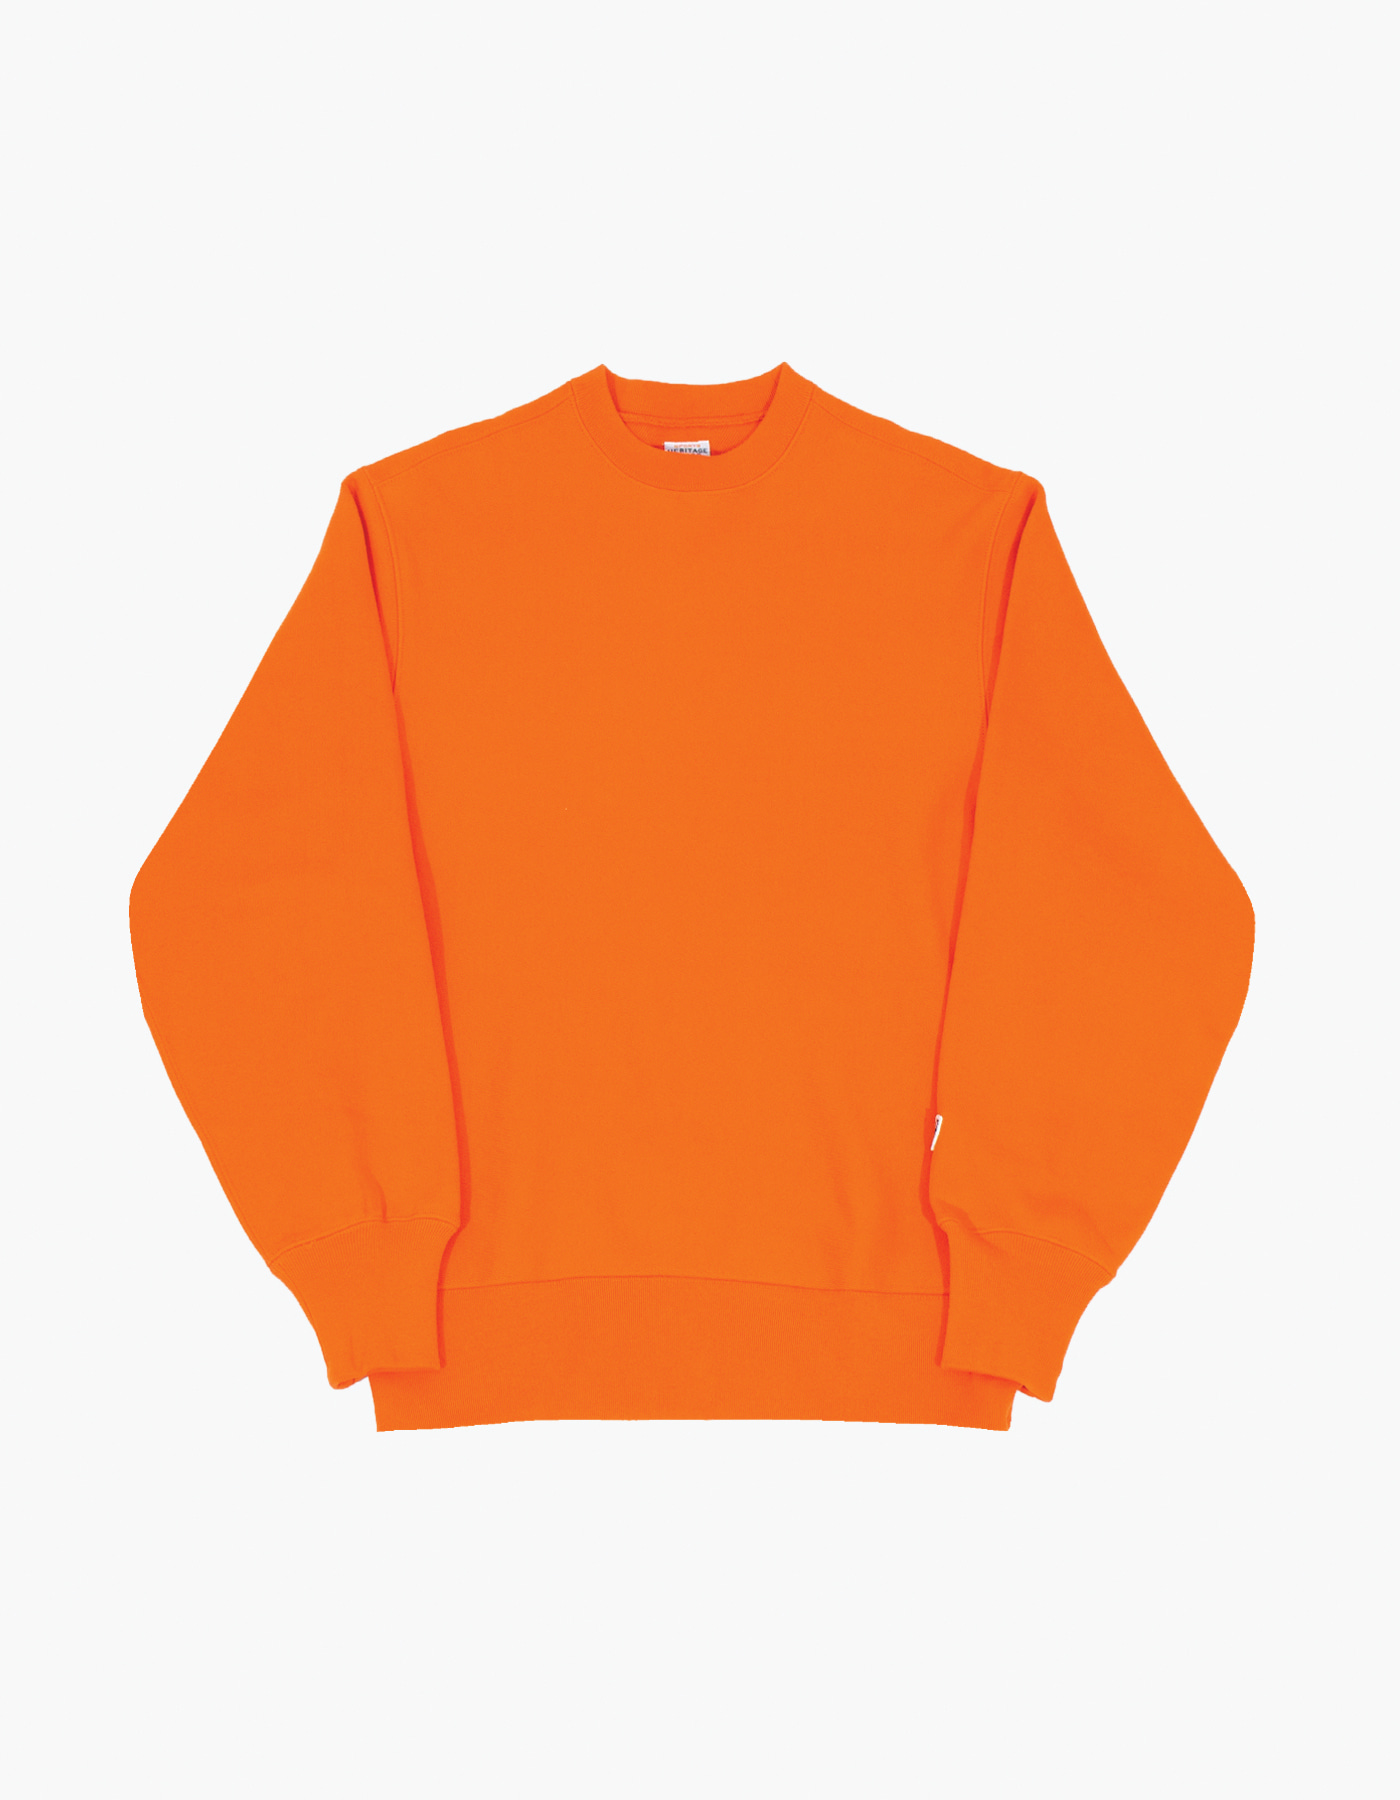 ACS CREWNECK / ORANGE